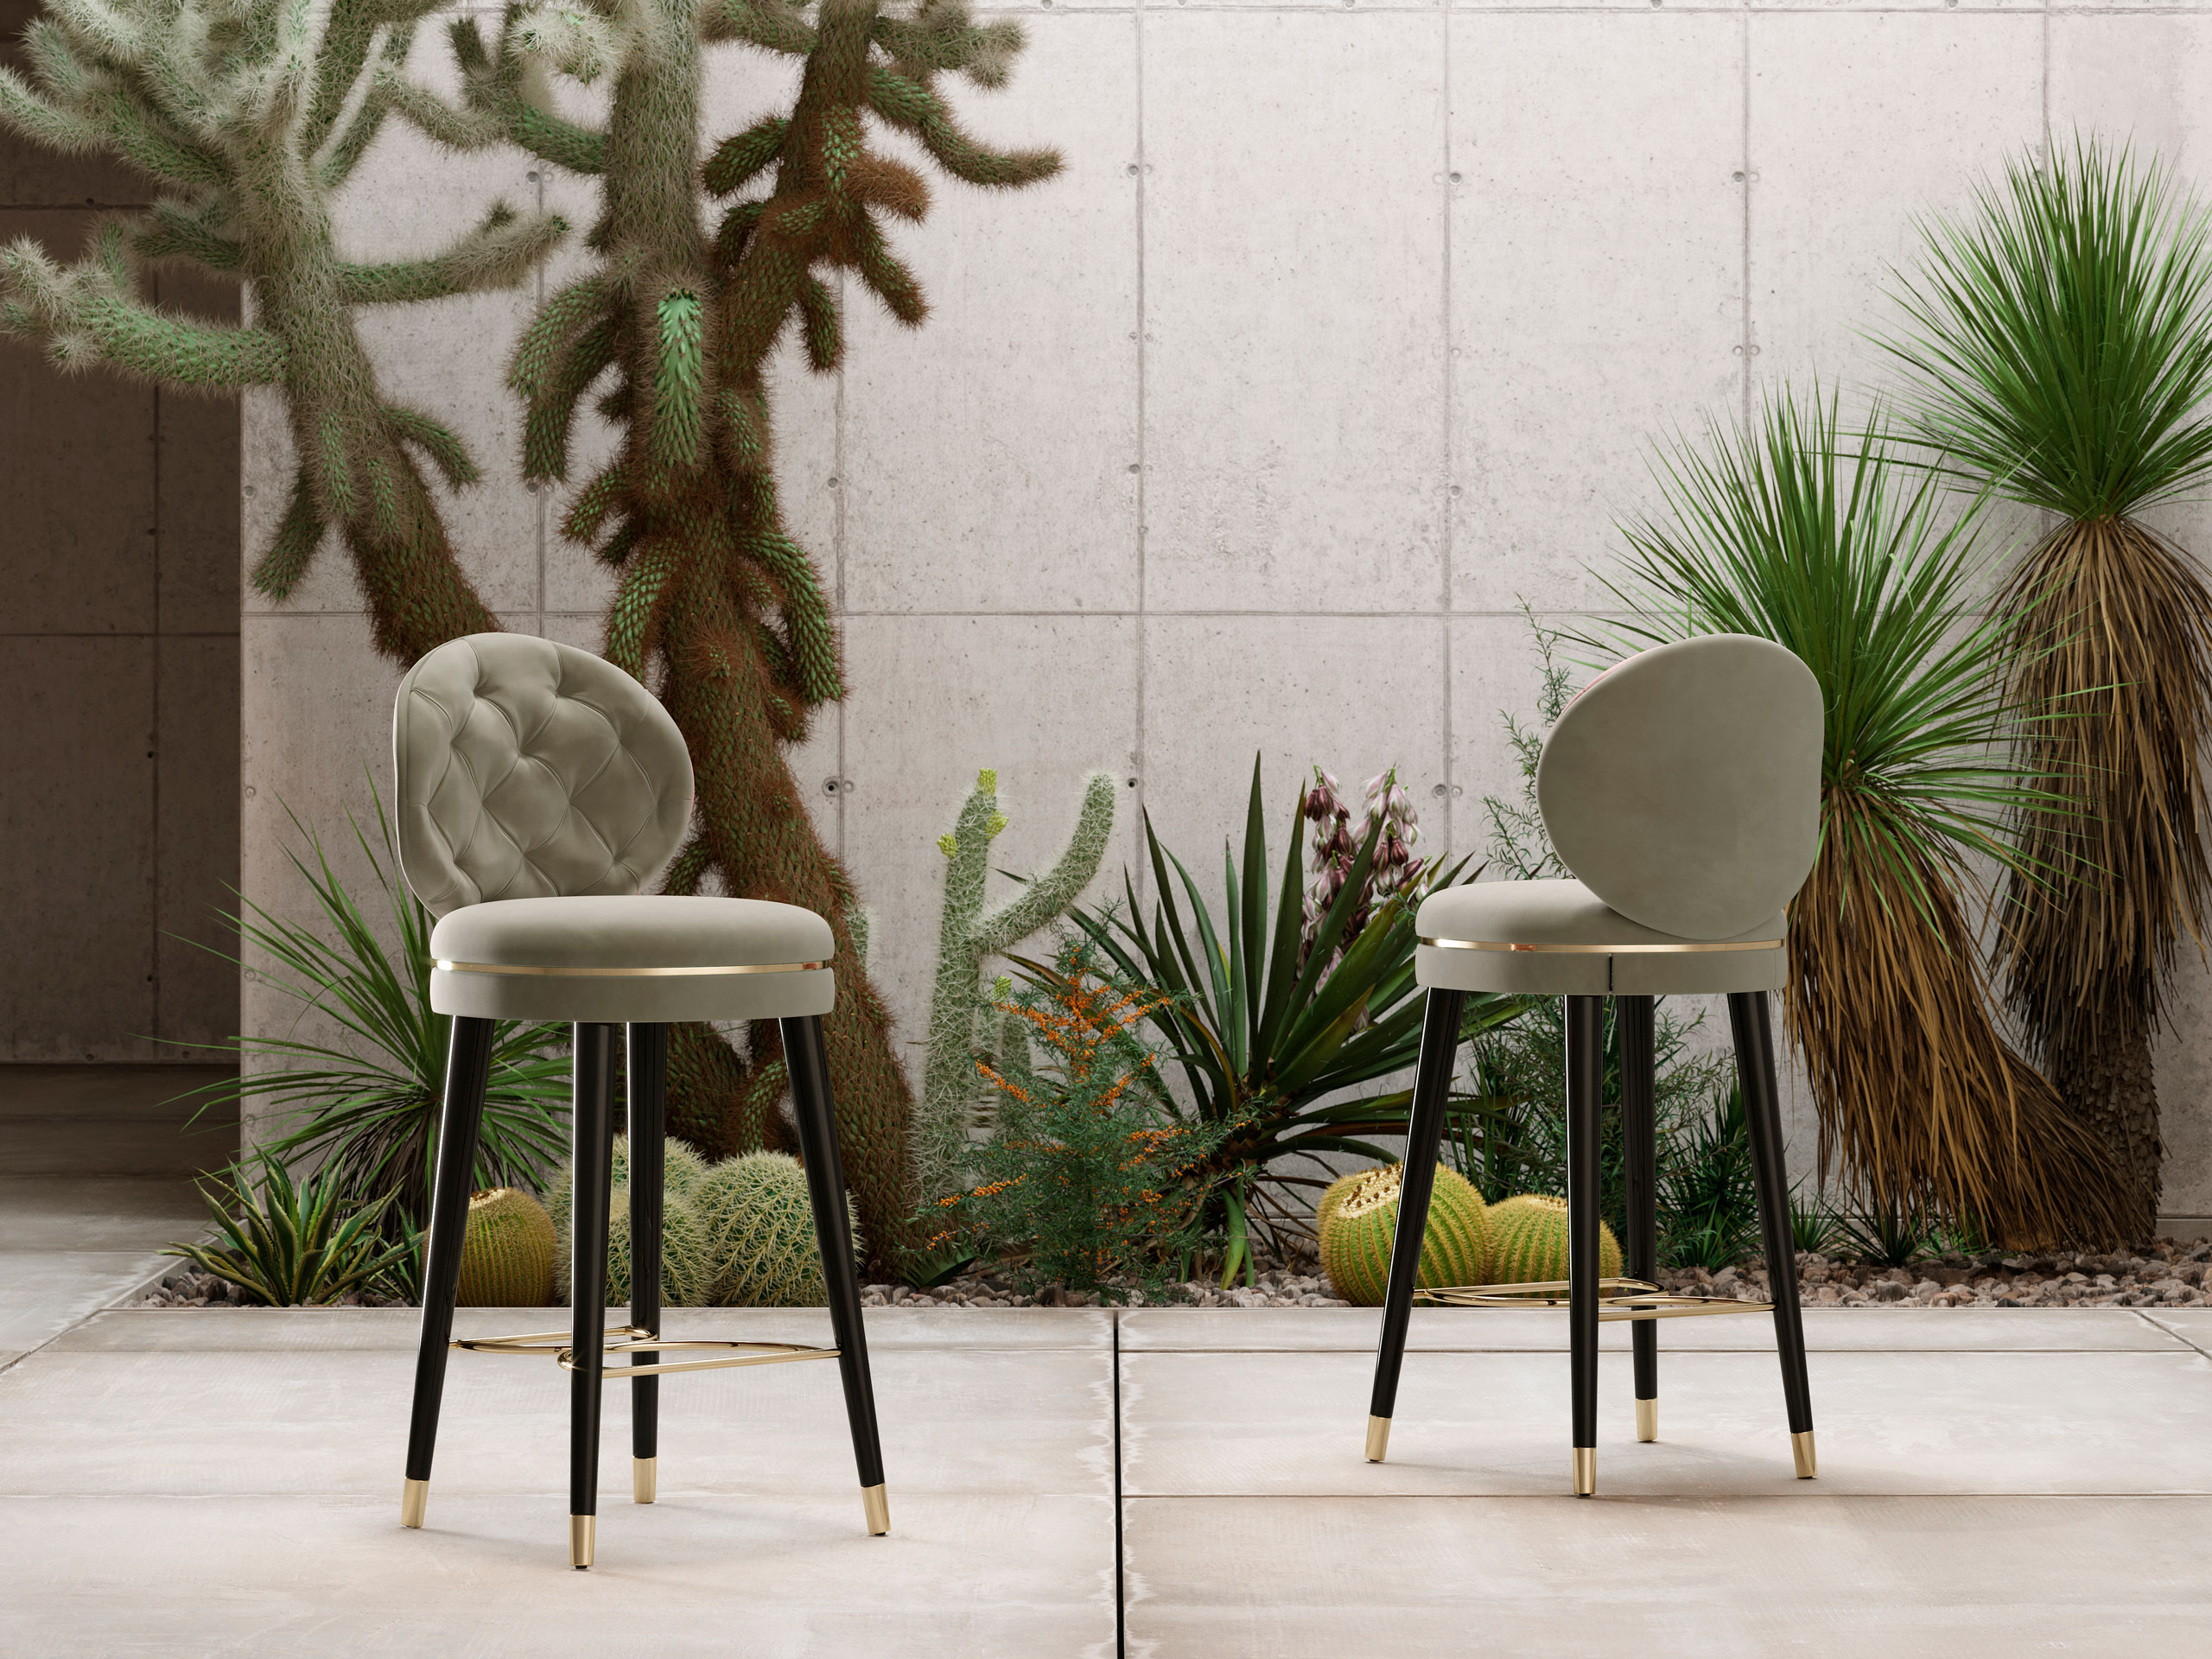 katy-counter-chair-domkapa-new-collection-2021-dining-room-decor-1